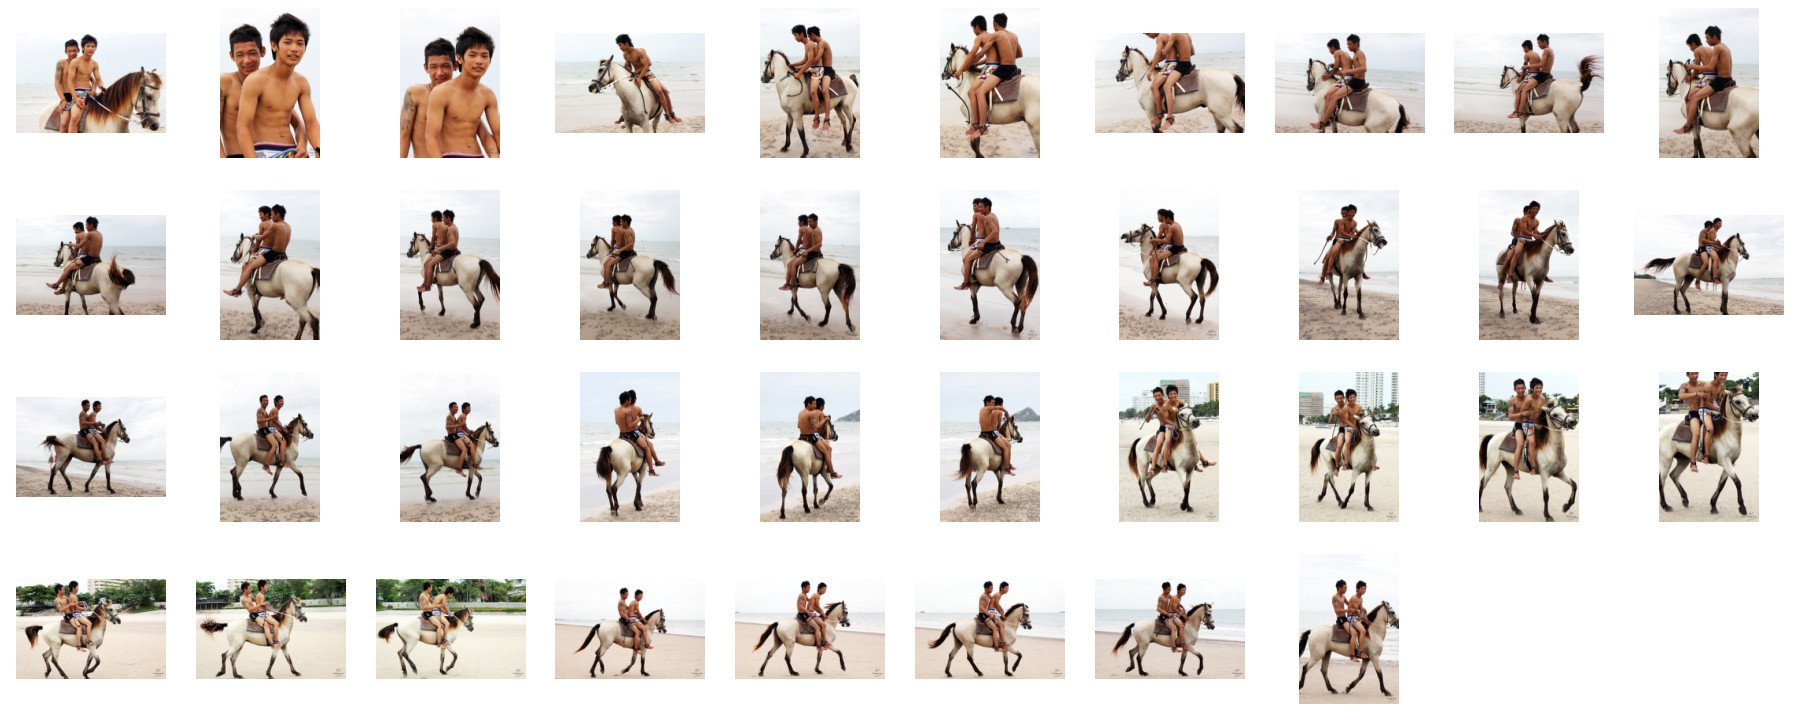 David and Thaksin in Shorts Riding Double with Saddle on Buckskin Horse, Part 7 - Riding.Vision